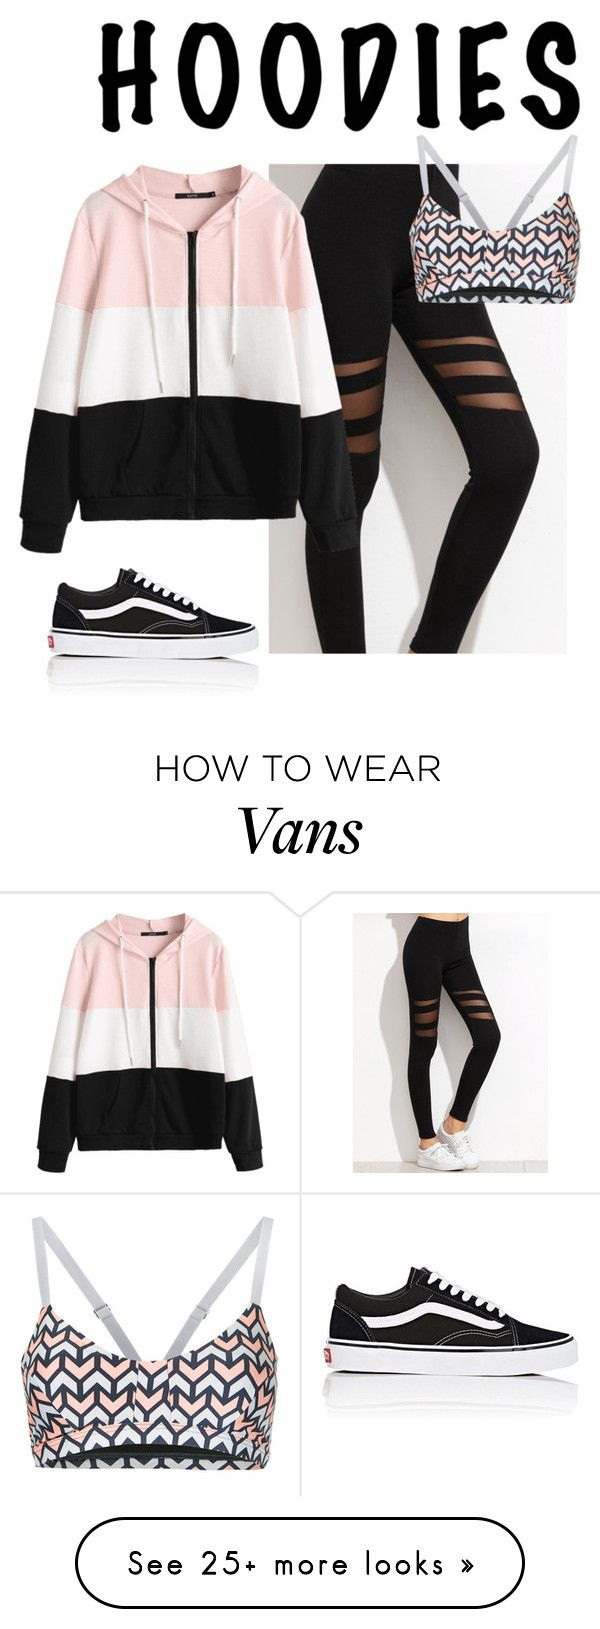 """Untitled #456"" by zahraamuhee on Polyvore featuring Vans, The Upside and Hoodies"